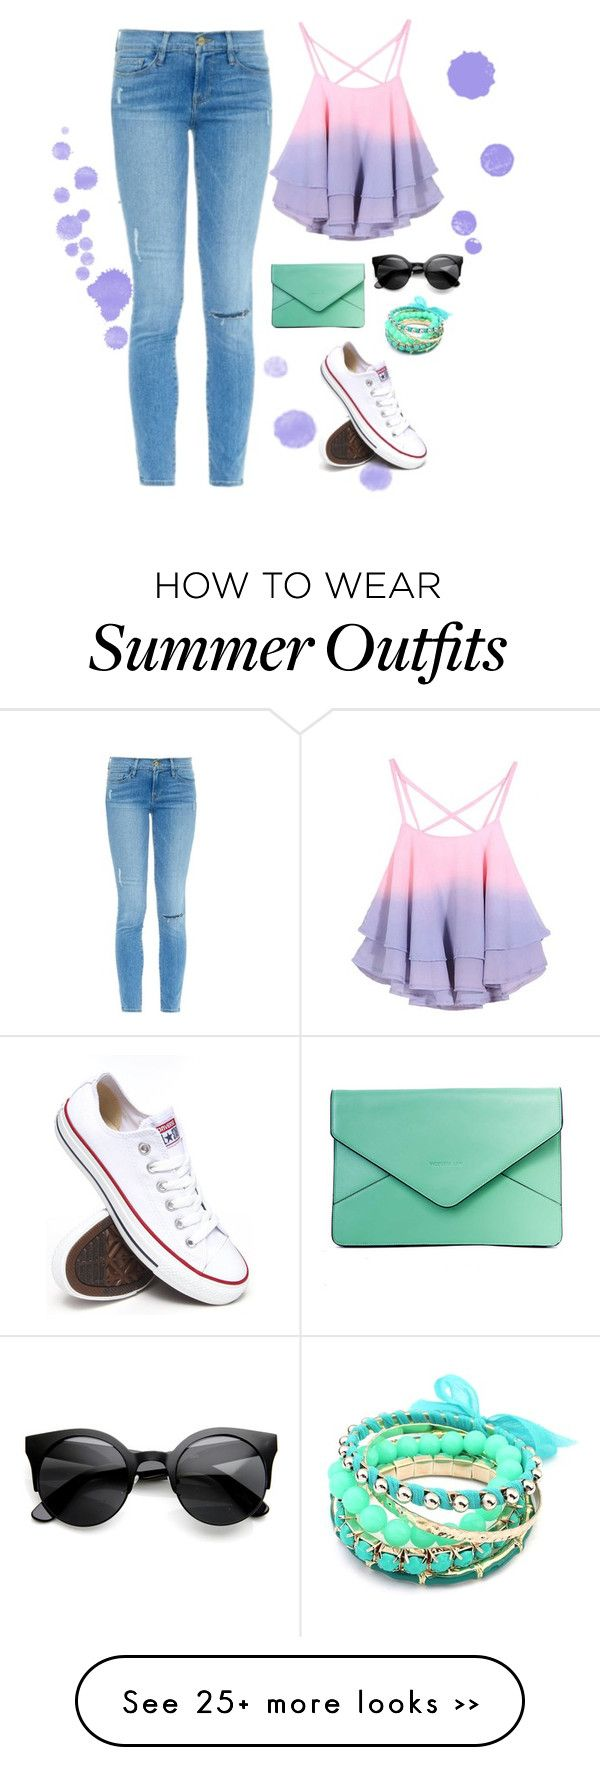 """Casual Summer Outfit"" by lizzywaters on Polyvore"